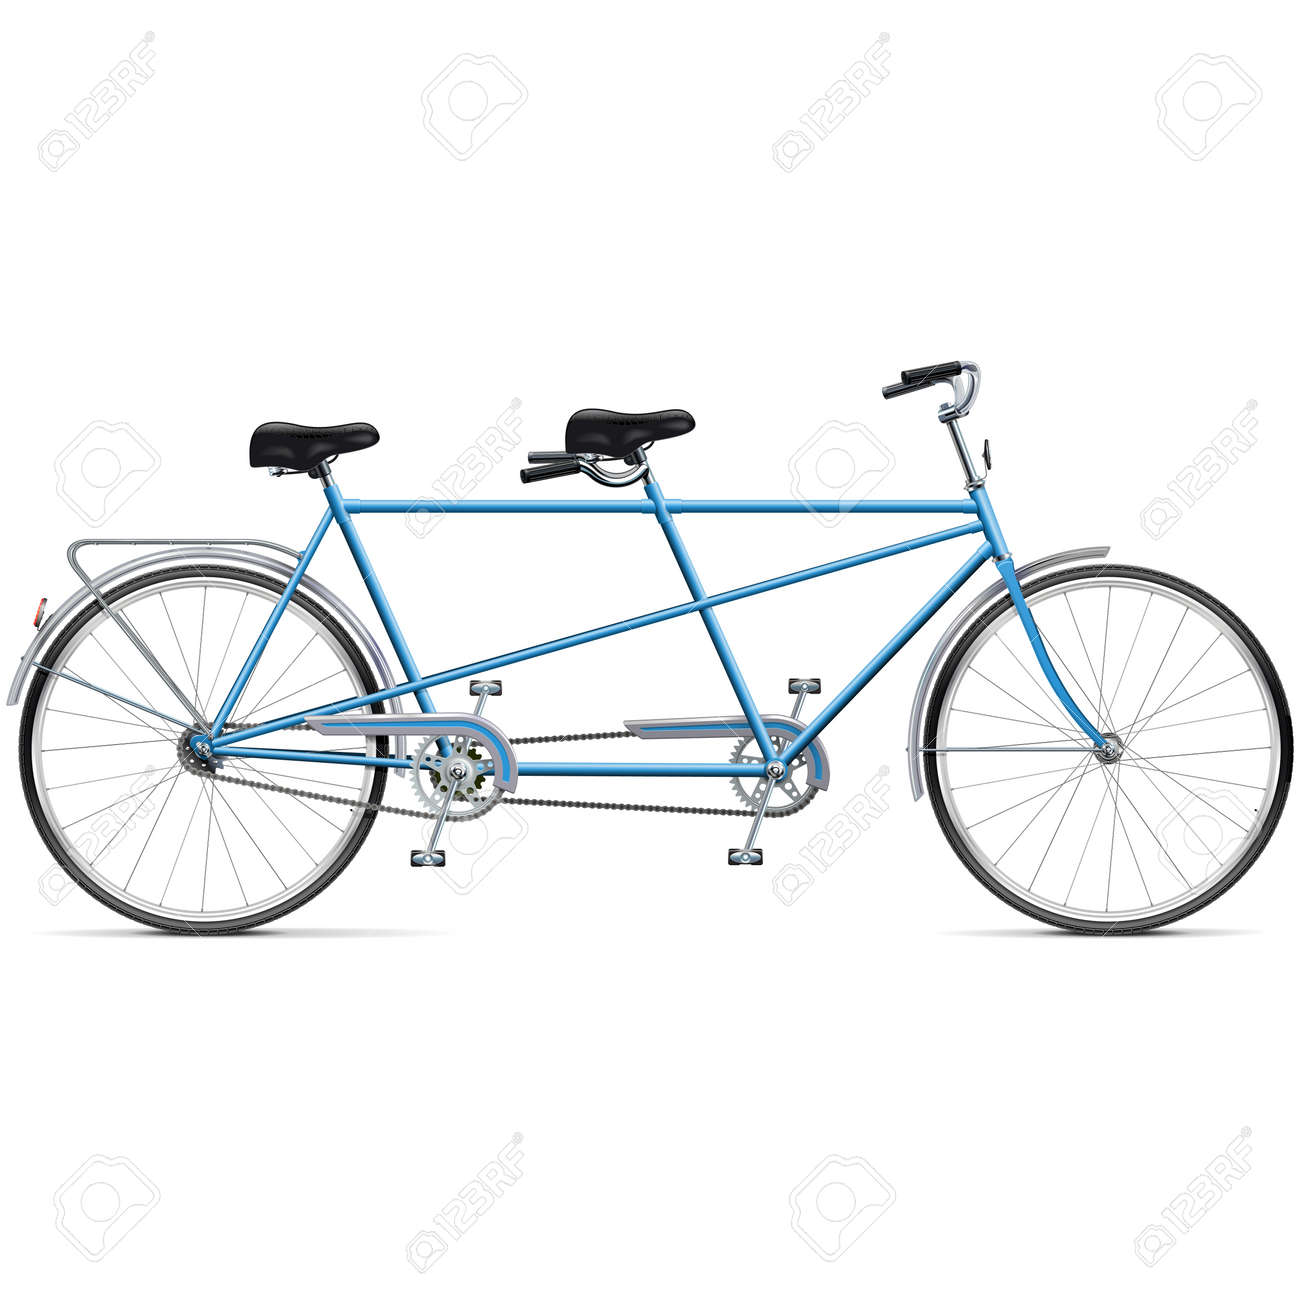 Vector Bicycle Tandem isolated on white background - 157102132